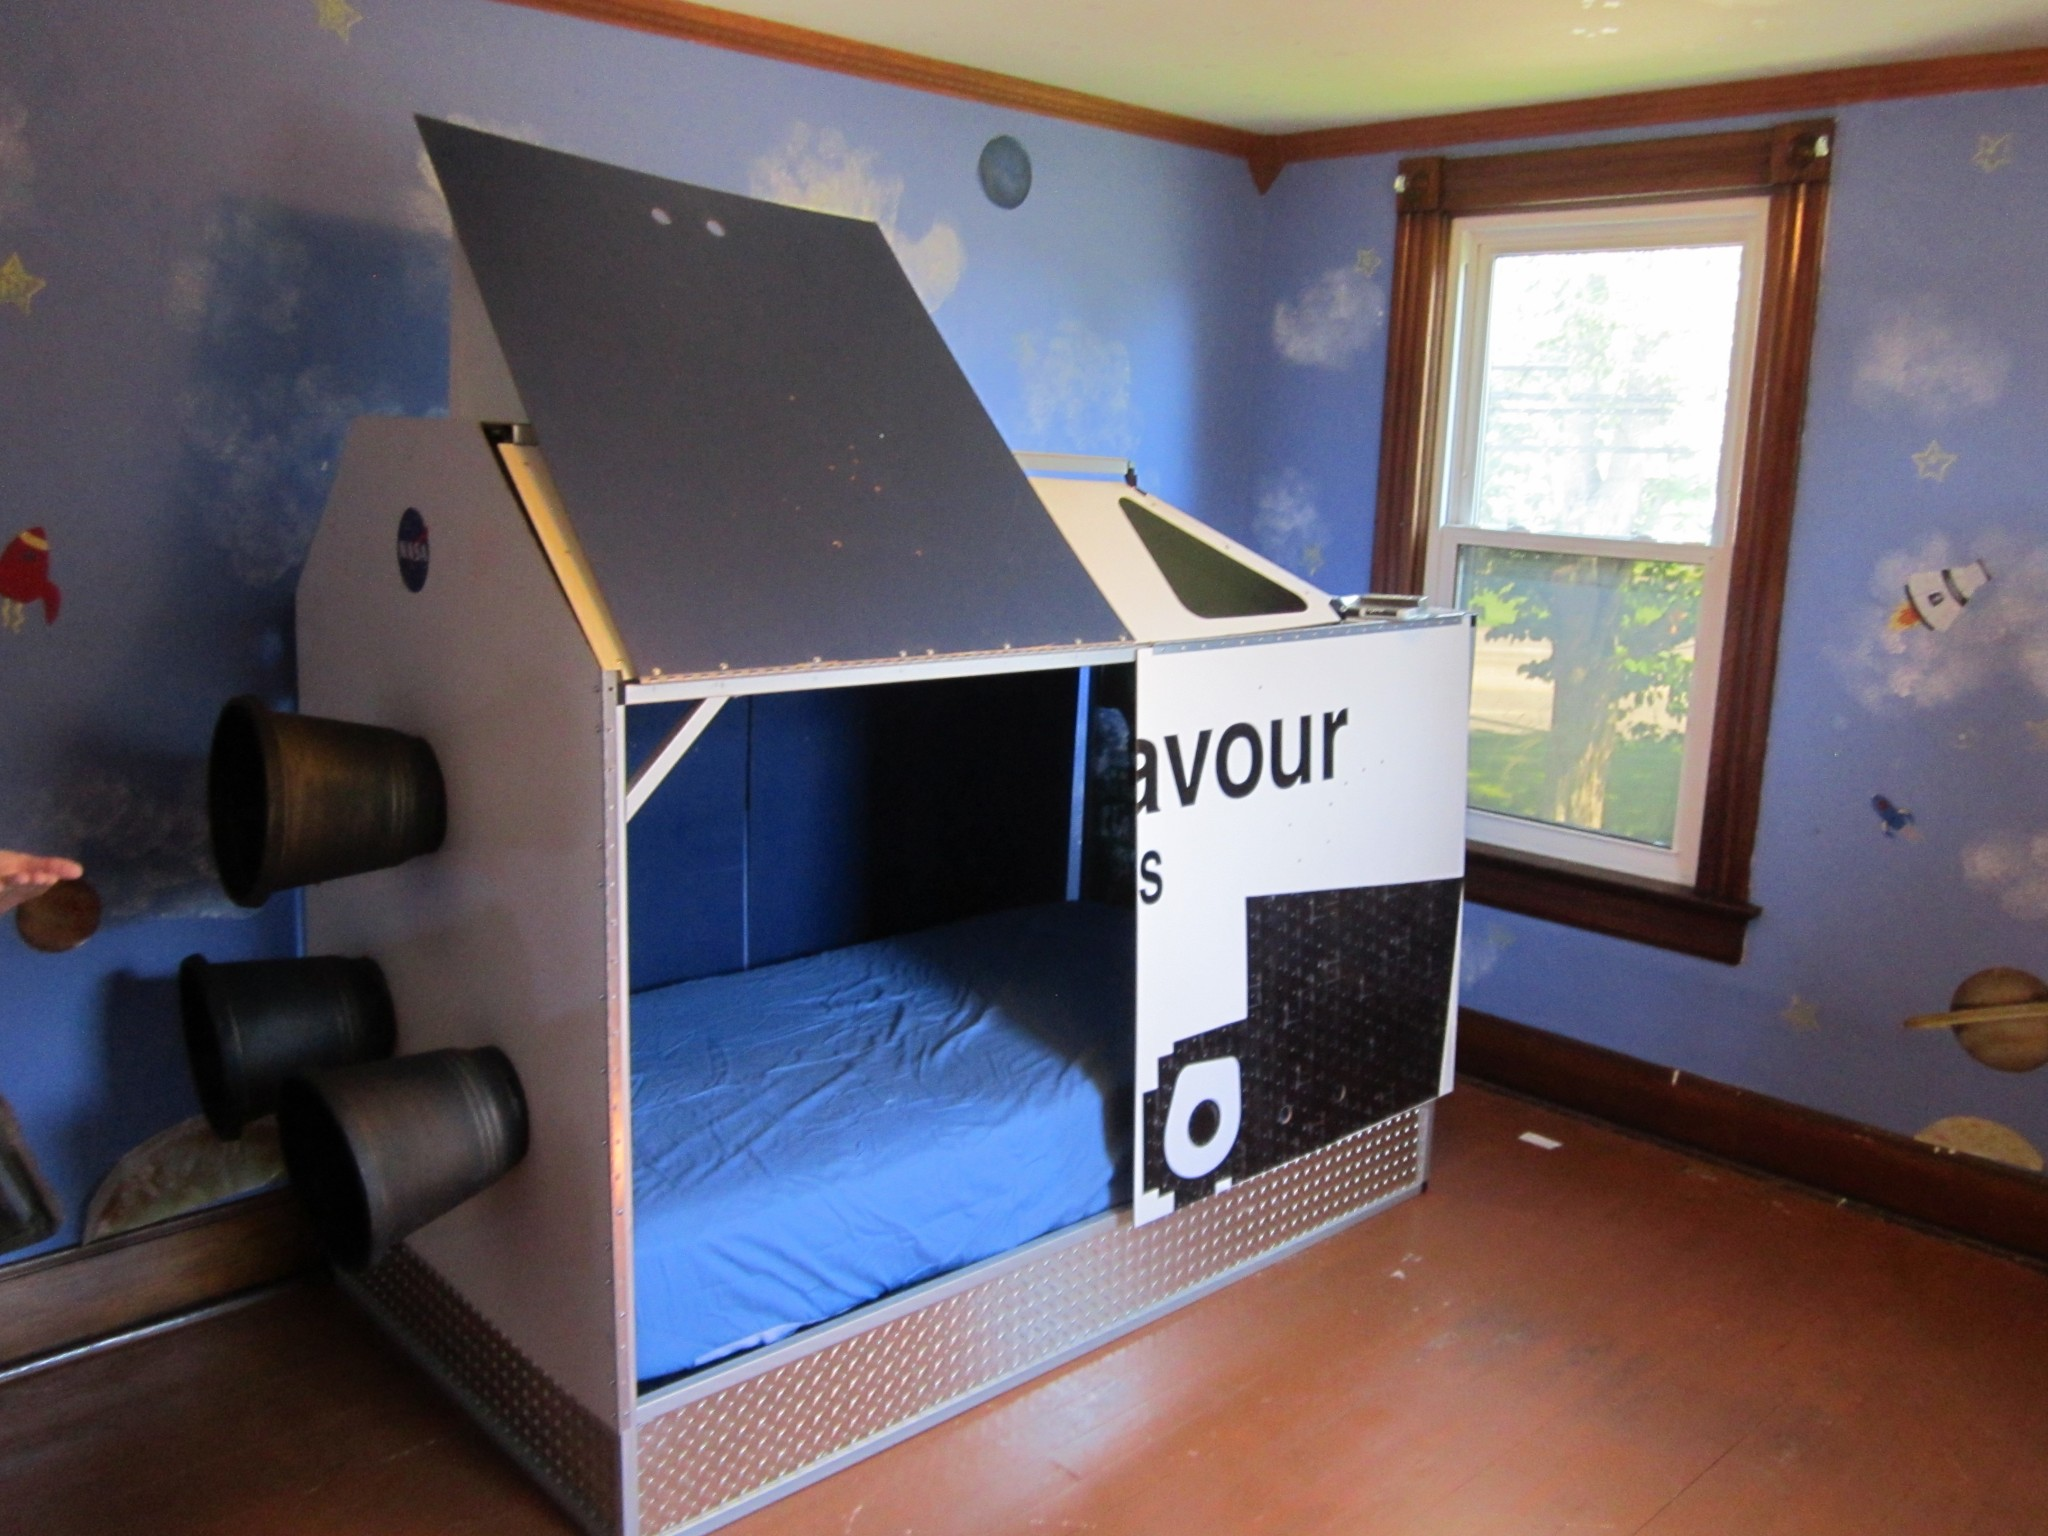 Rocket bed home design for Childrens rocket bed